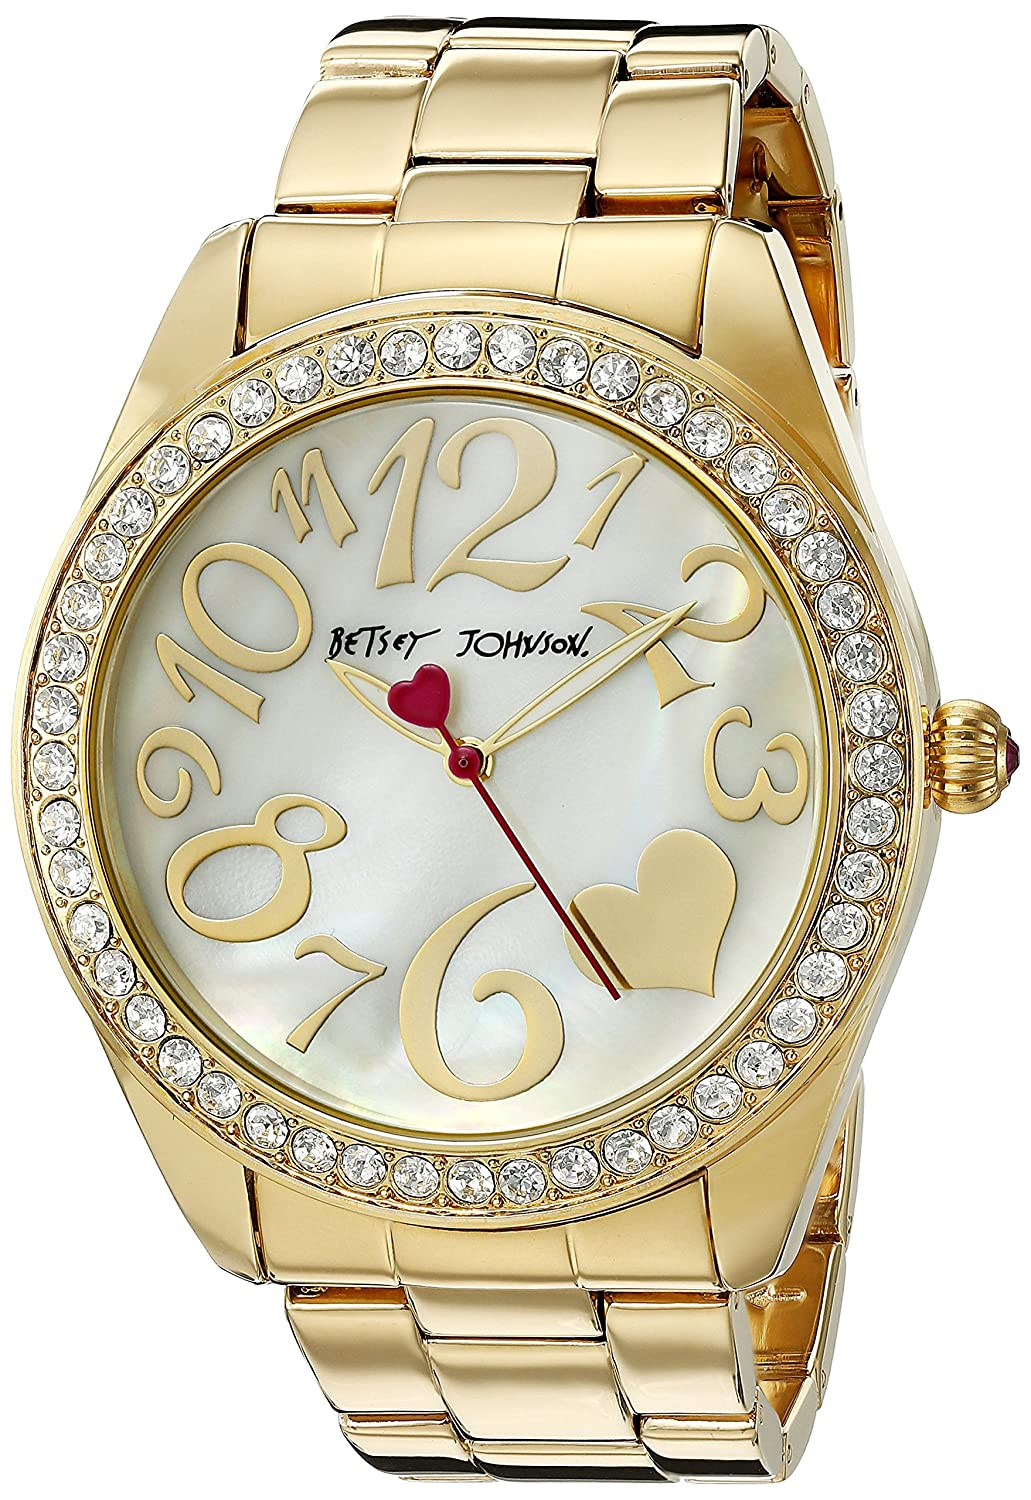 Betsey Johnson Women's BJ00249-27 Analog Display Quartz Gold Watch